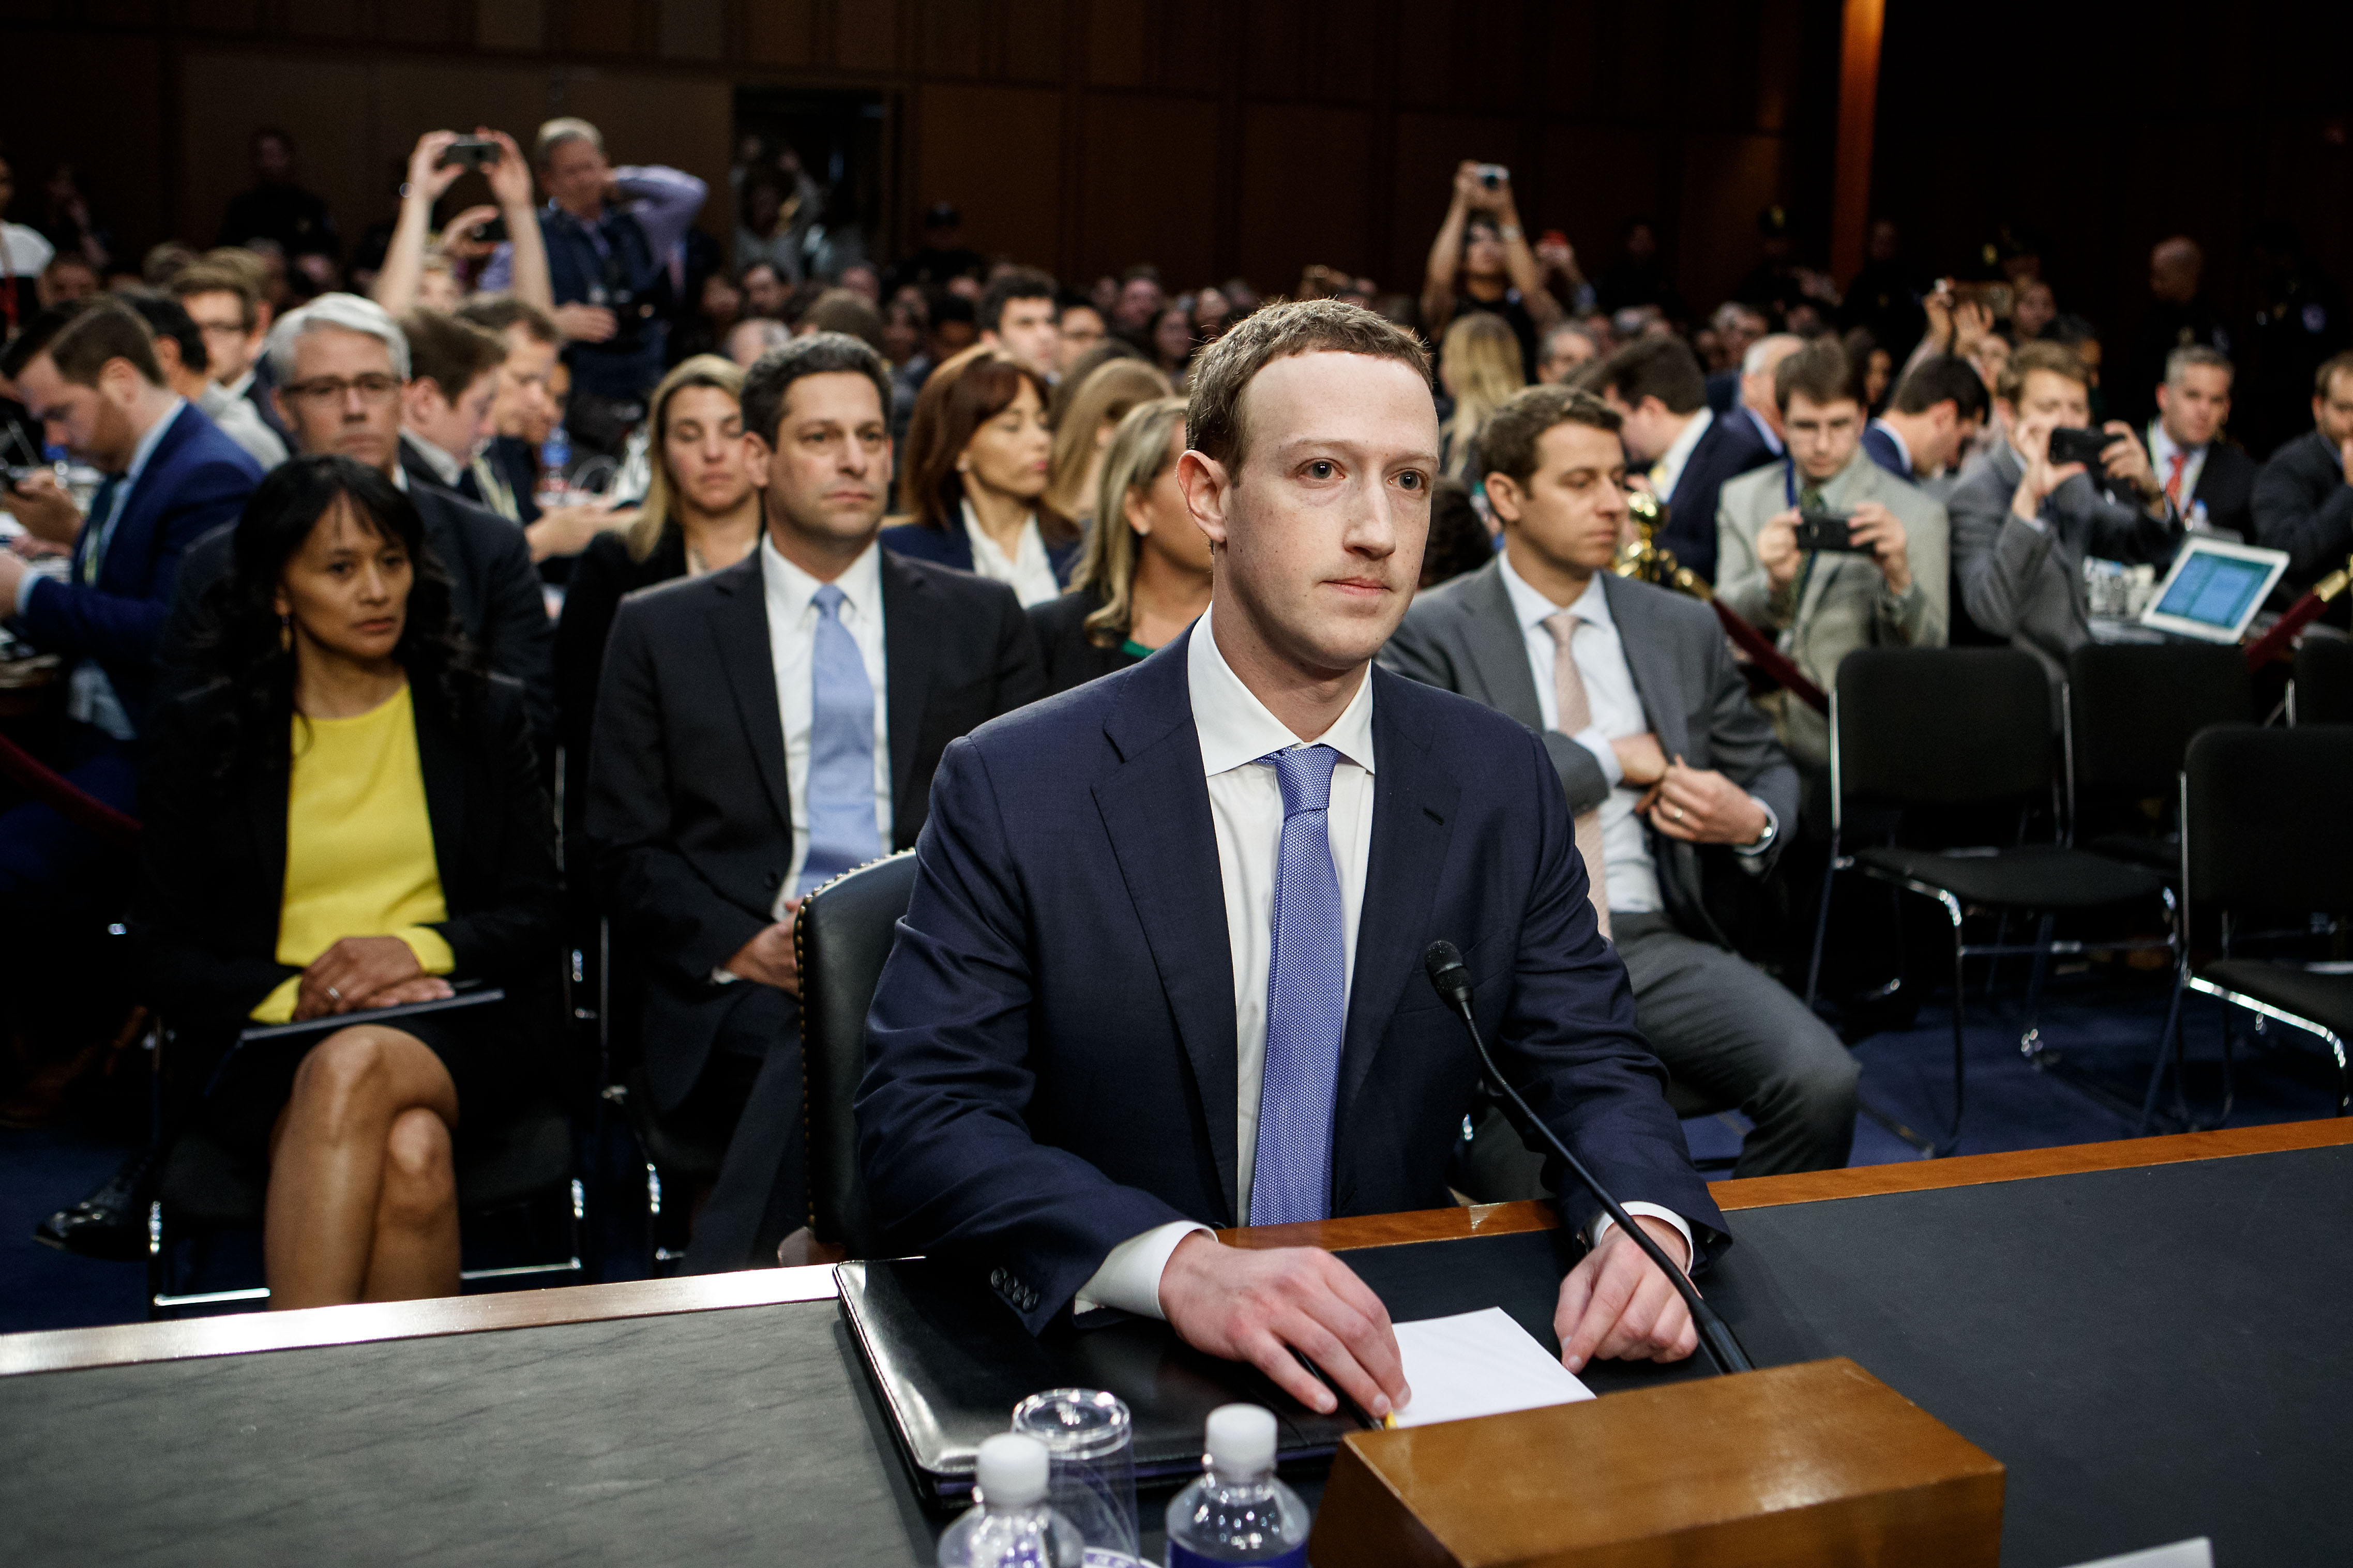 Facebook CEO Mark Zuckerberg at a joint hearing of the Senate Judiciary and Commerce committees in Washington D.C